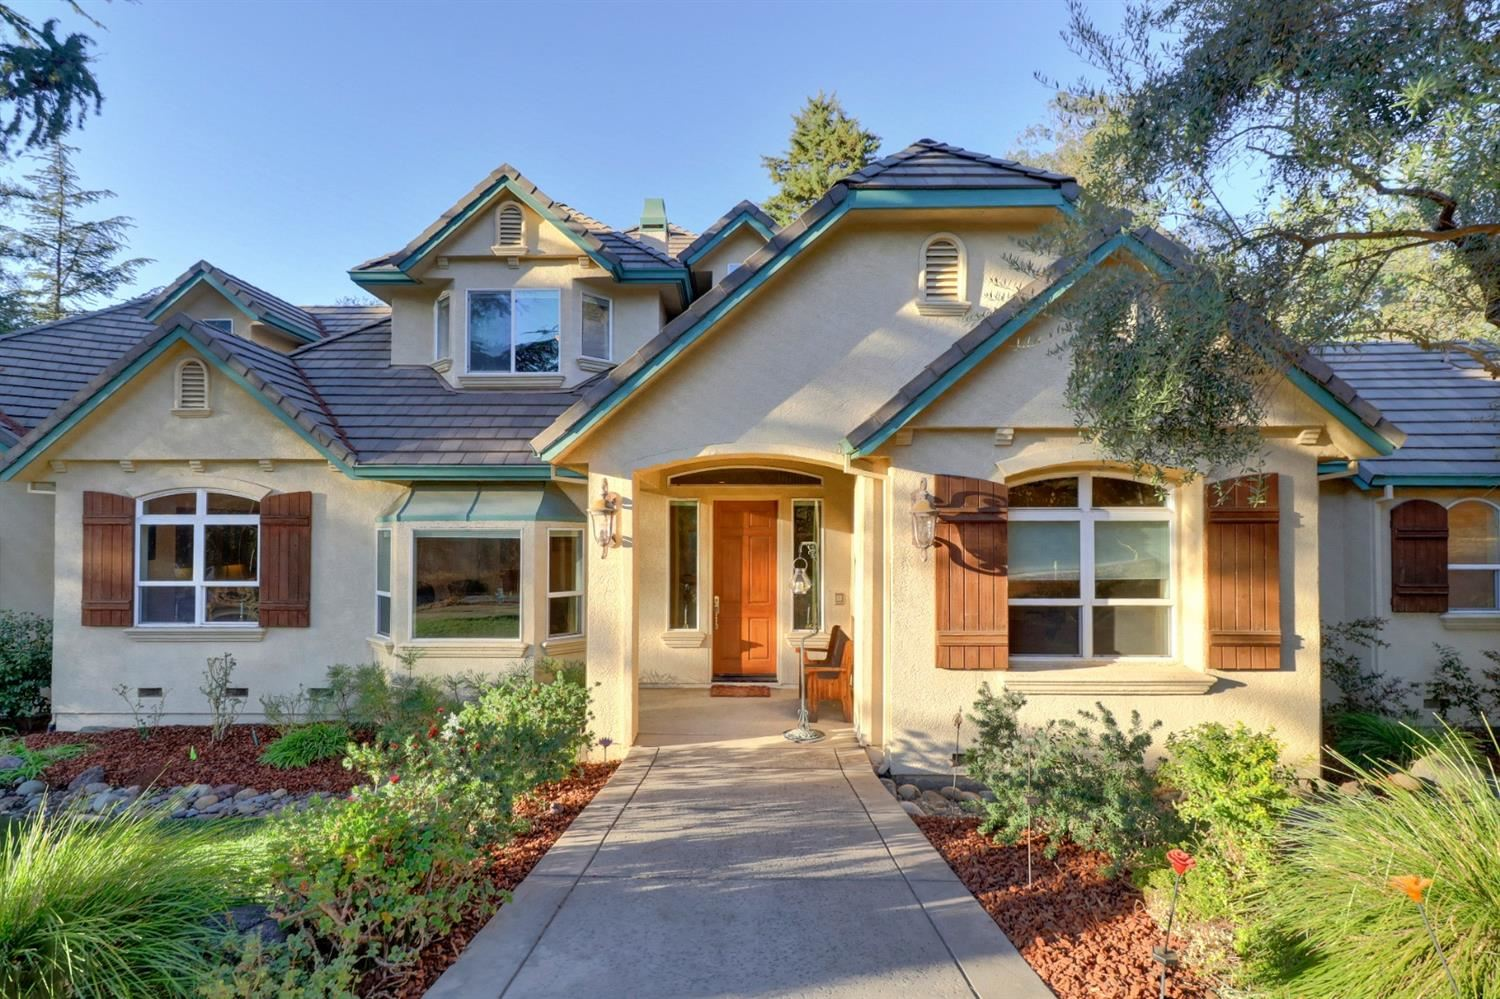 Photo of 4307 New York Avenue, Fair Oaks, CA 95628 (MLS # 20063568)